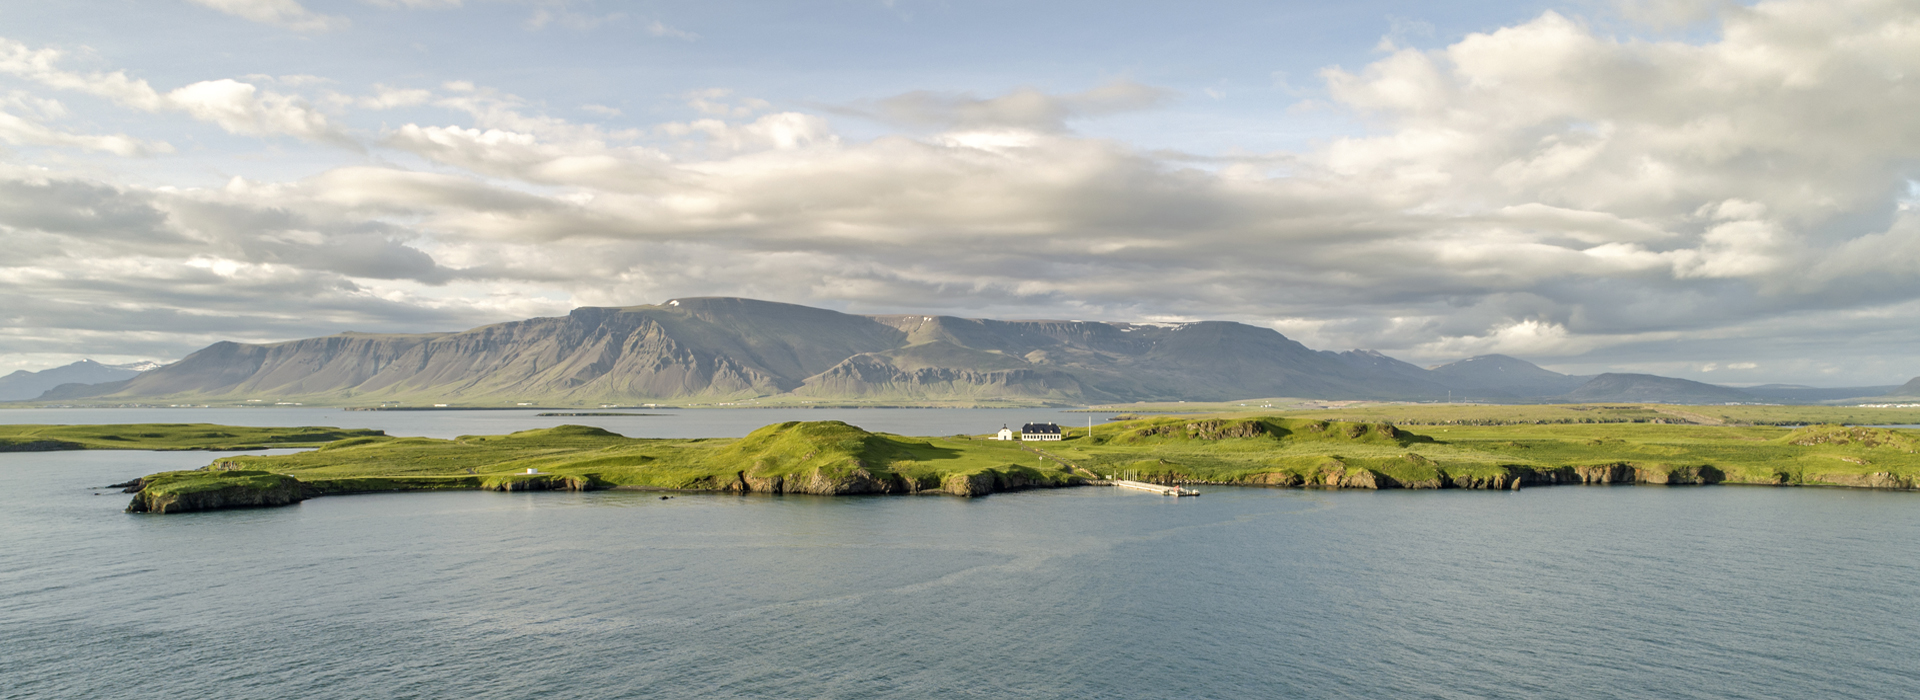 Videy island with Esja mountain in background